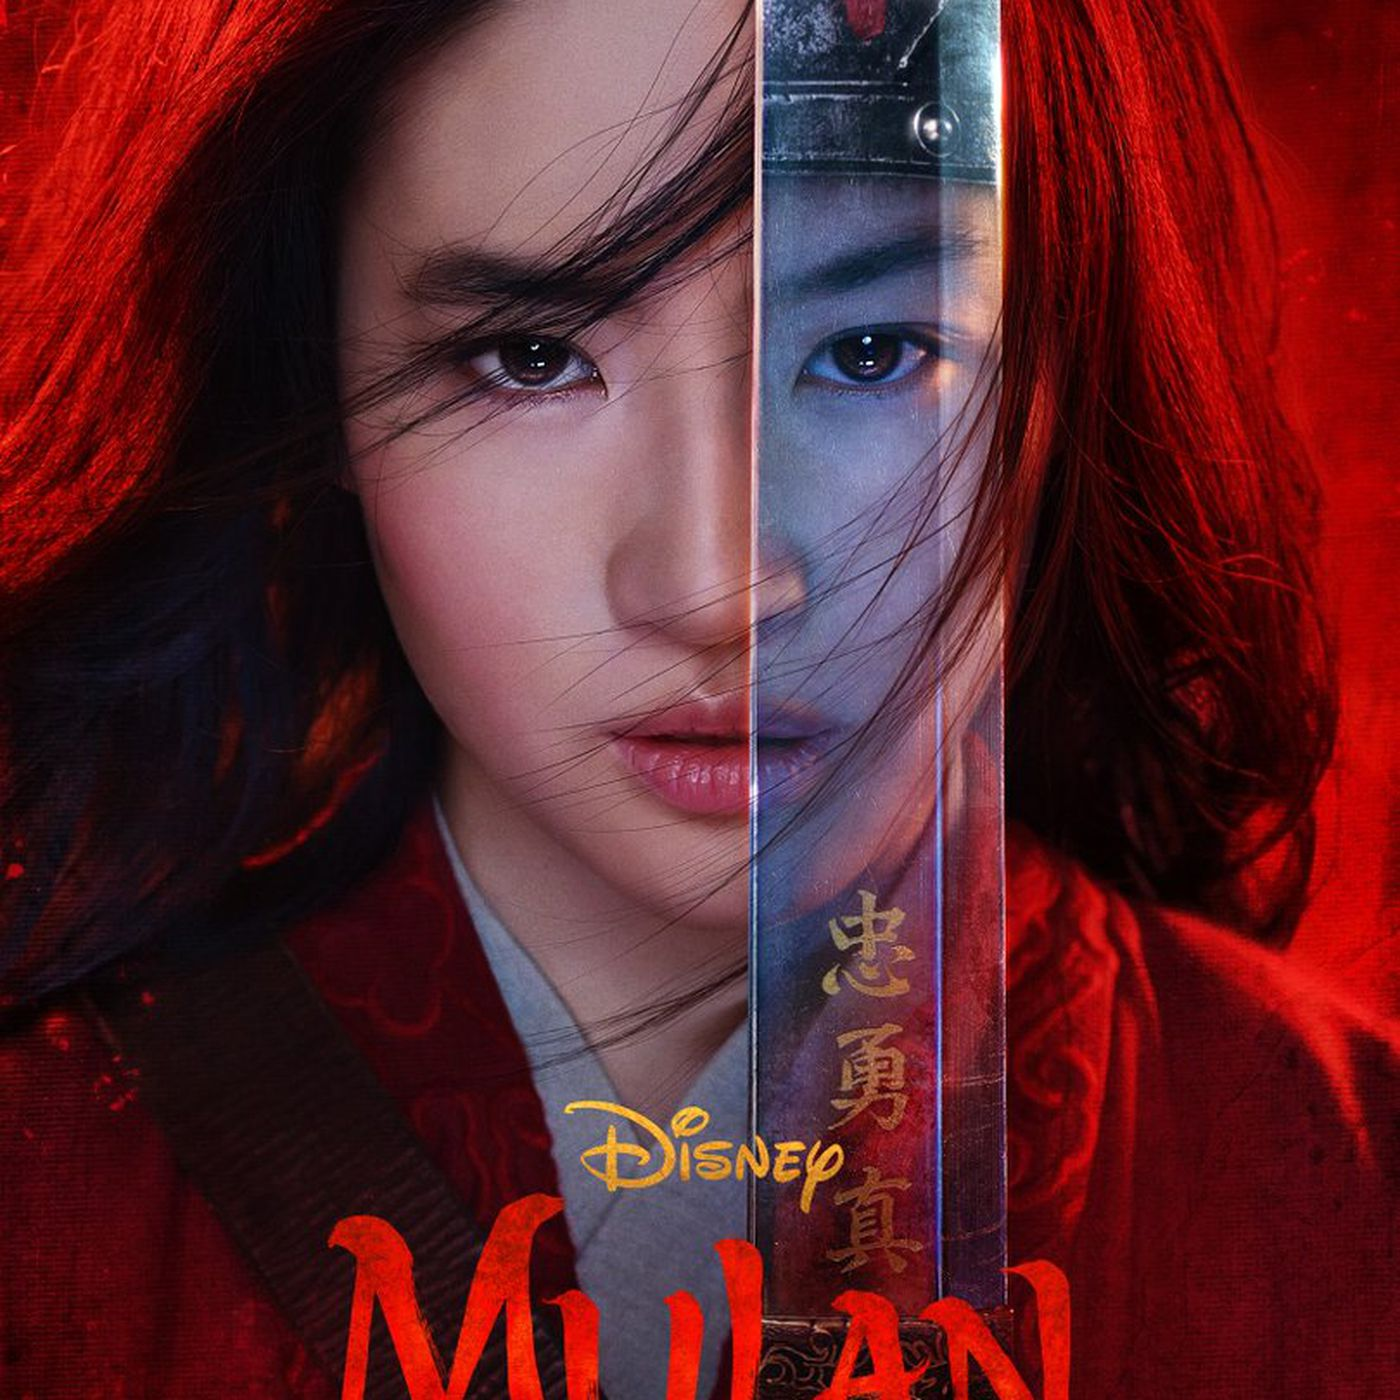 Disney's Mulan live-action trailer: less music, more action